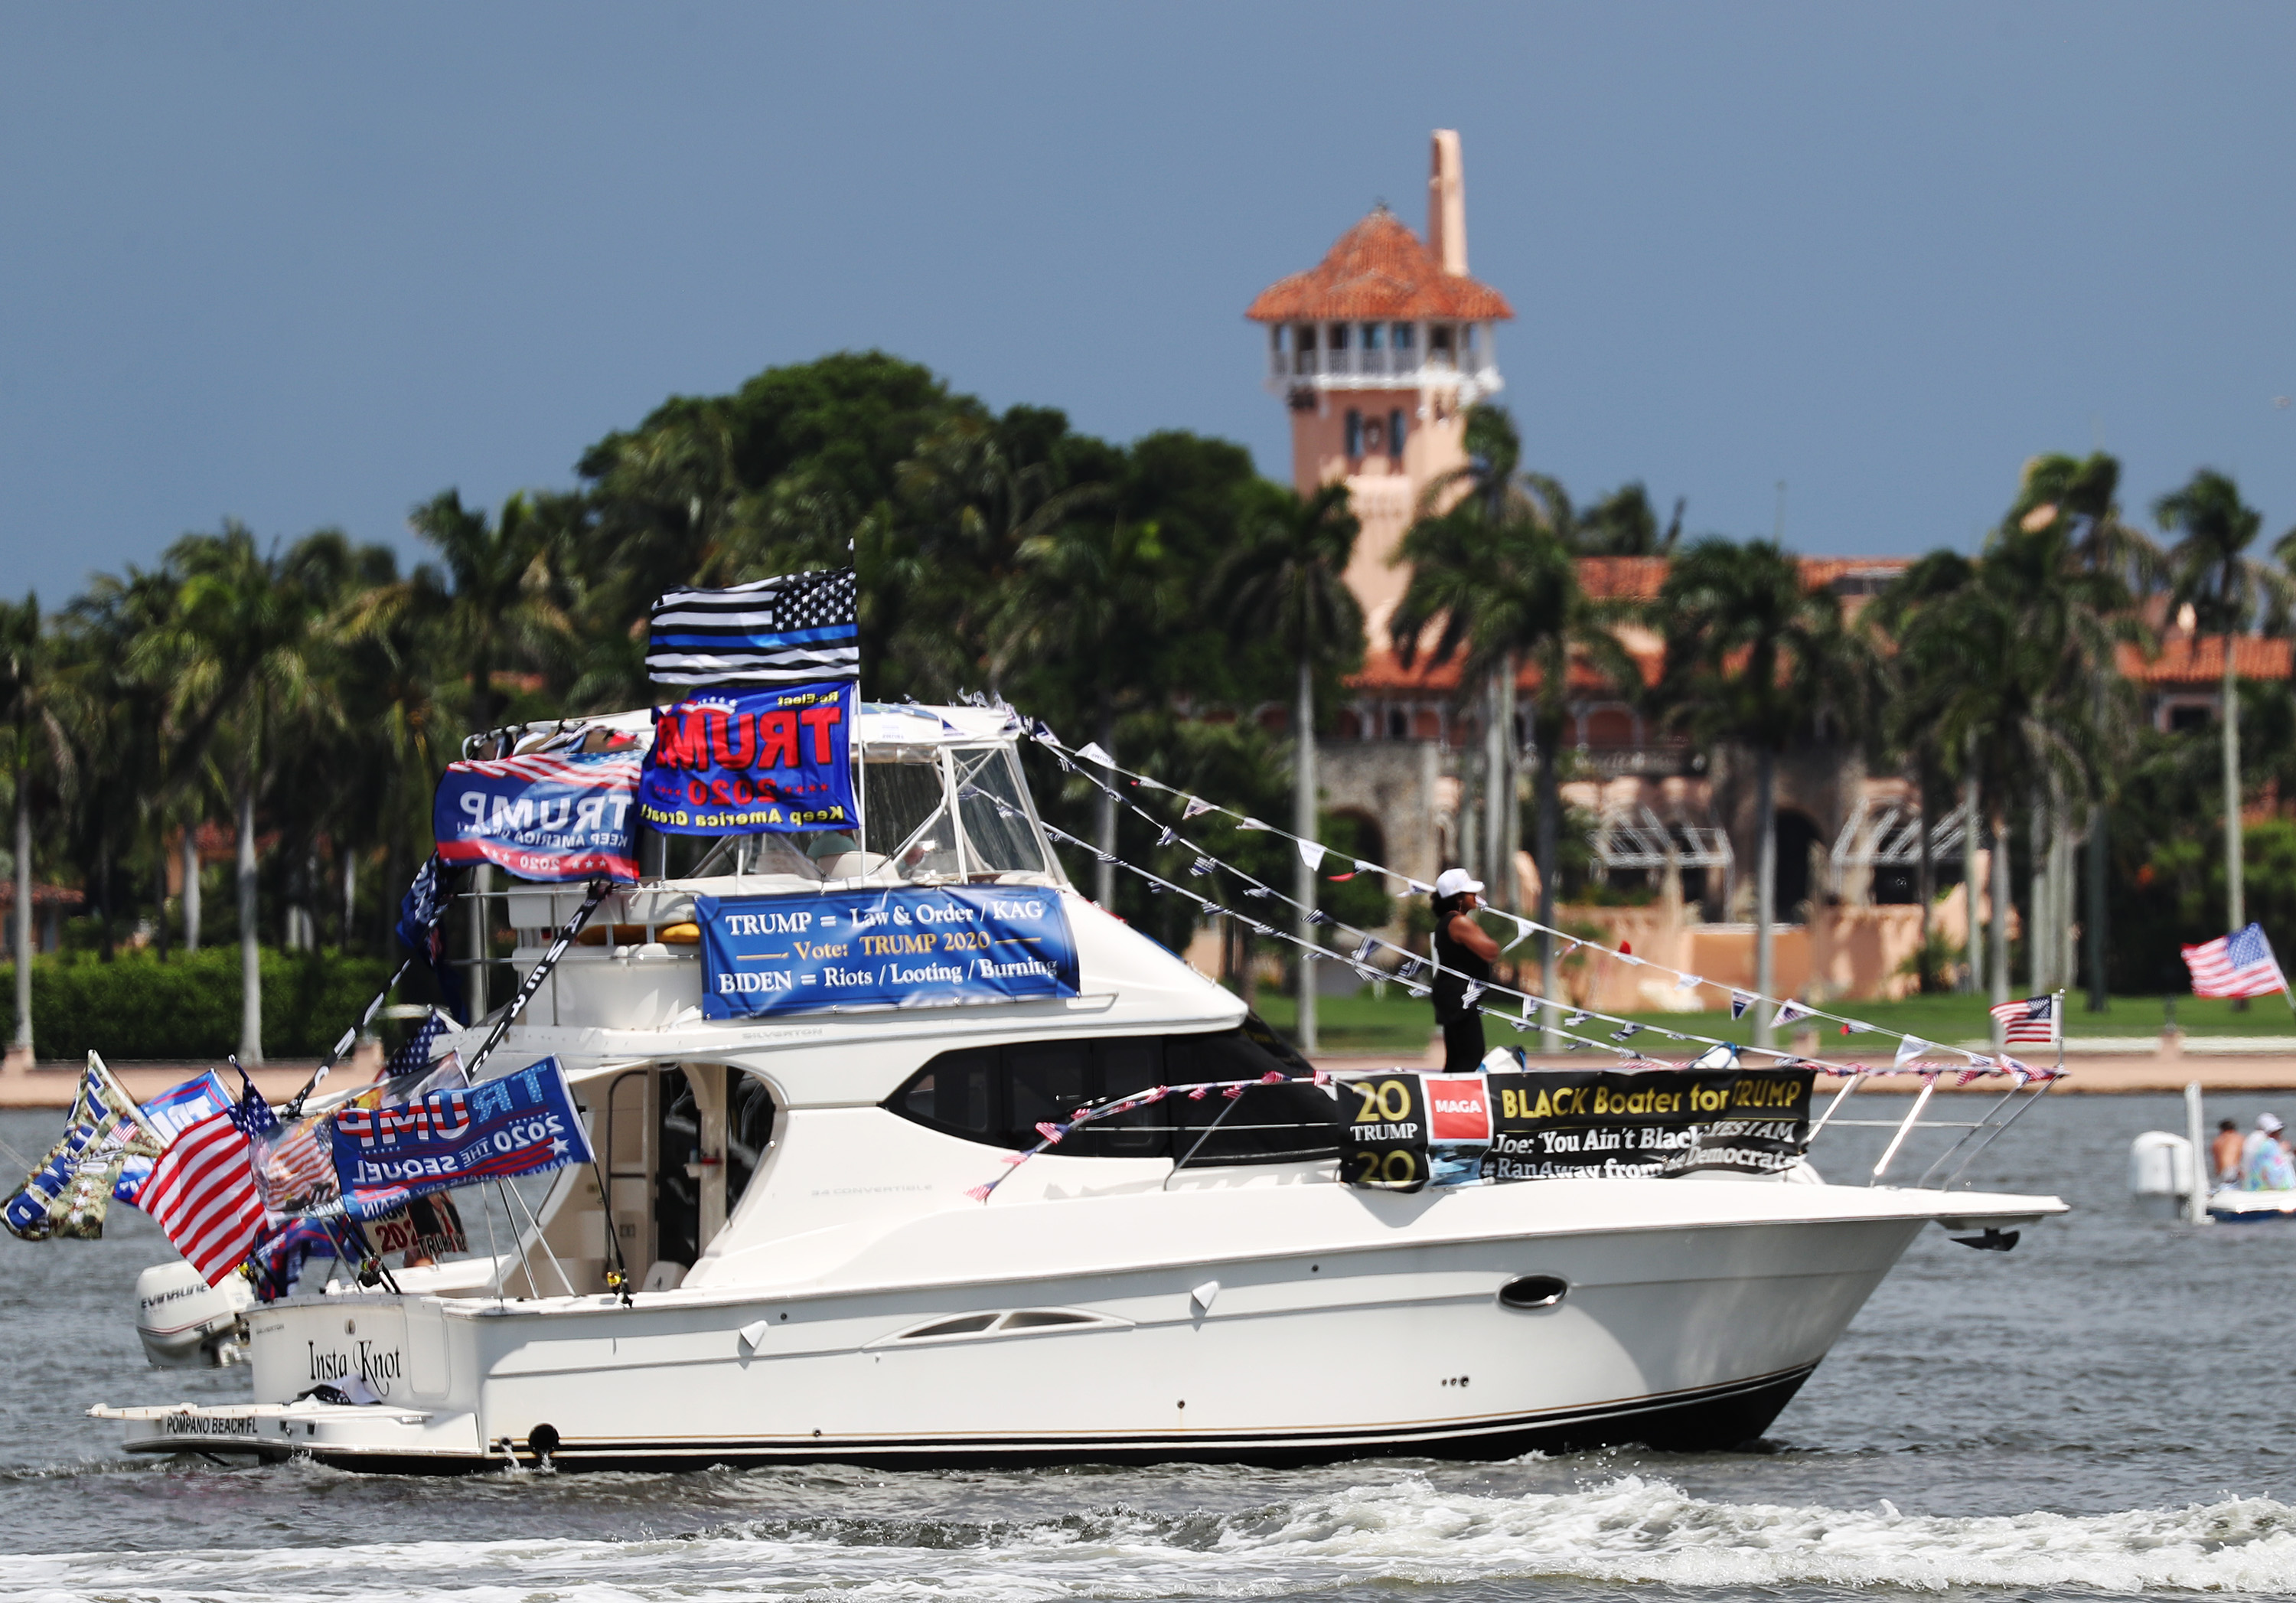 A boat sails just off the shore of President Donald Trump's home at Mar-a-Lago during a boat parade to support the president on September 7 in West Palm Beach, Florida.